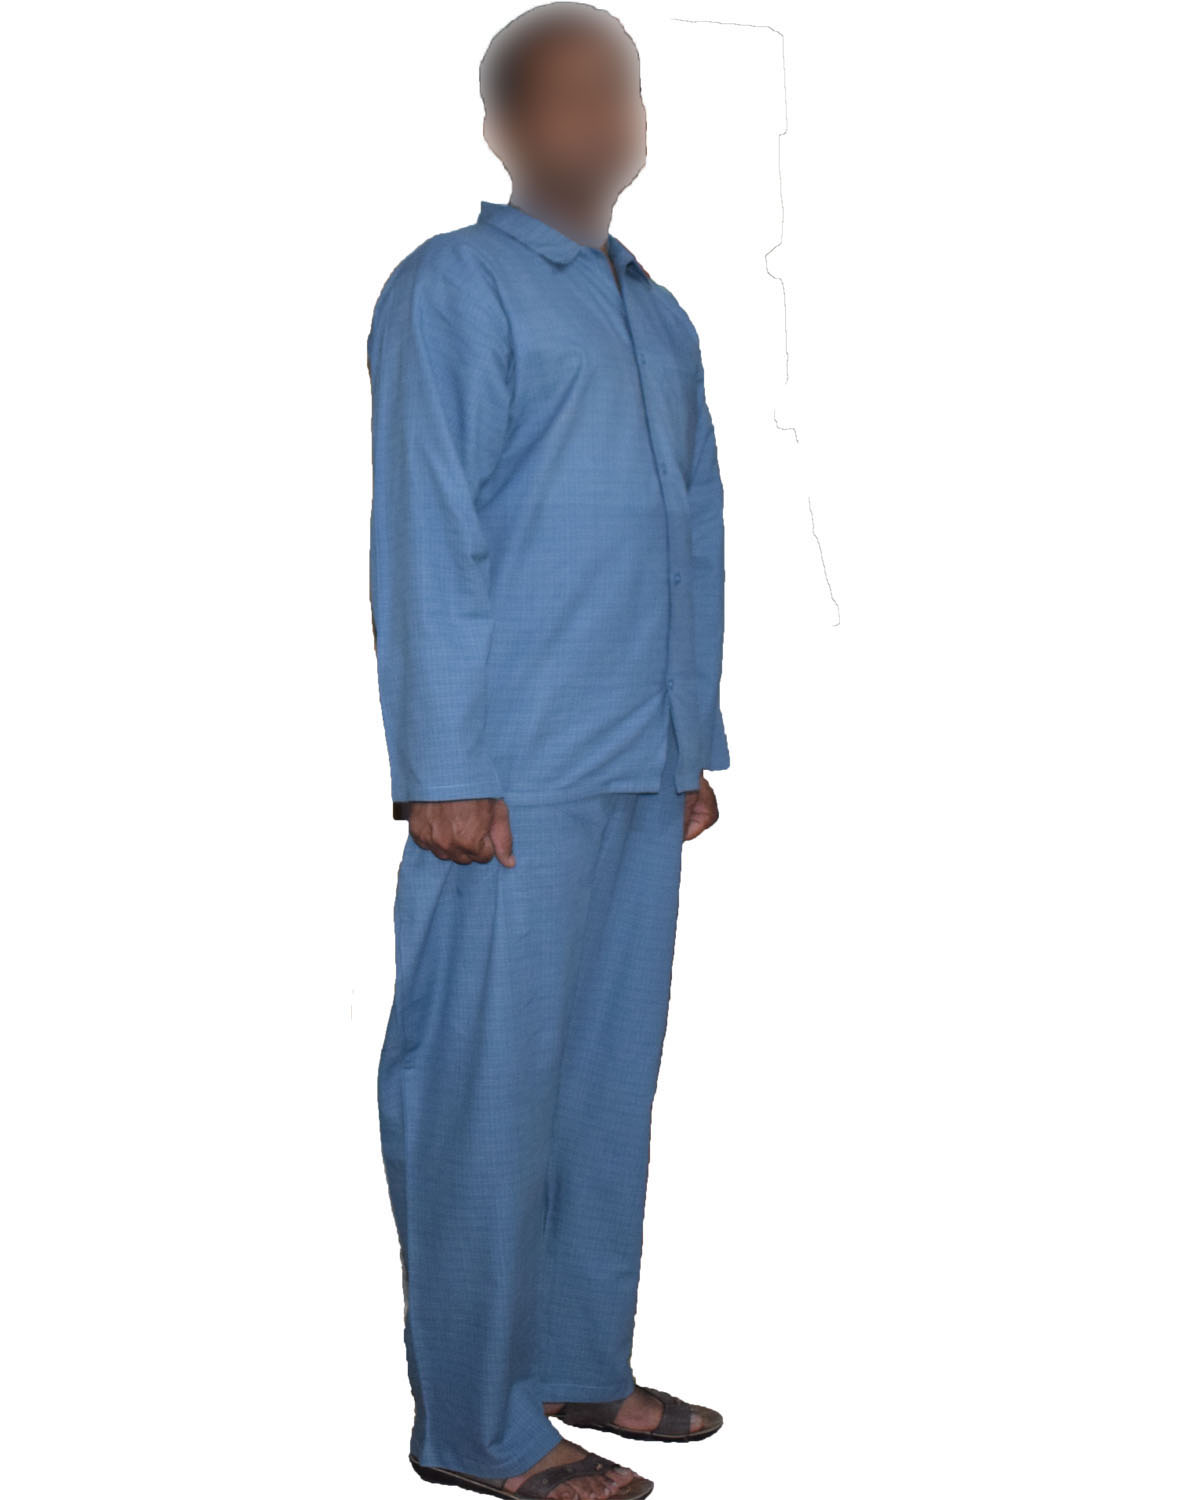 SLEEPING SUIT